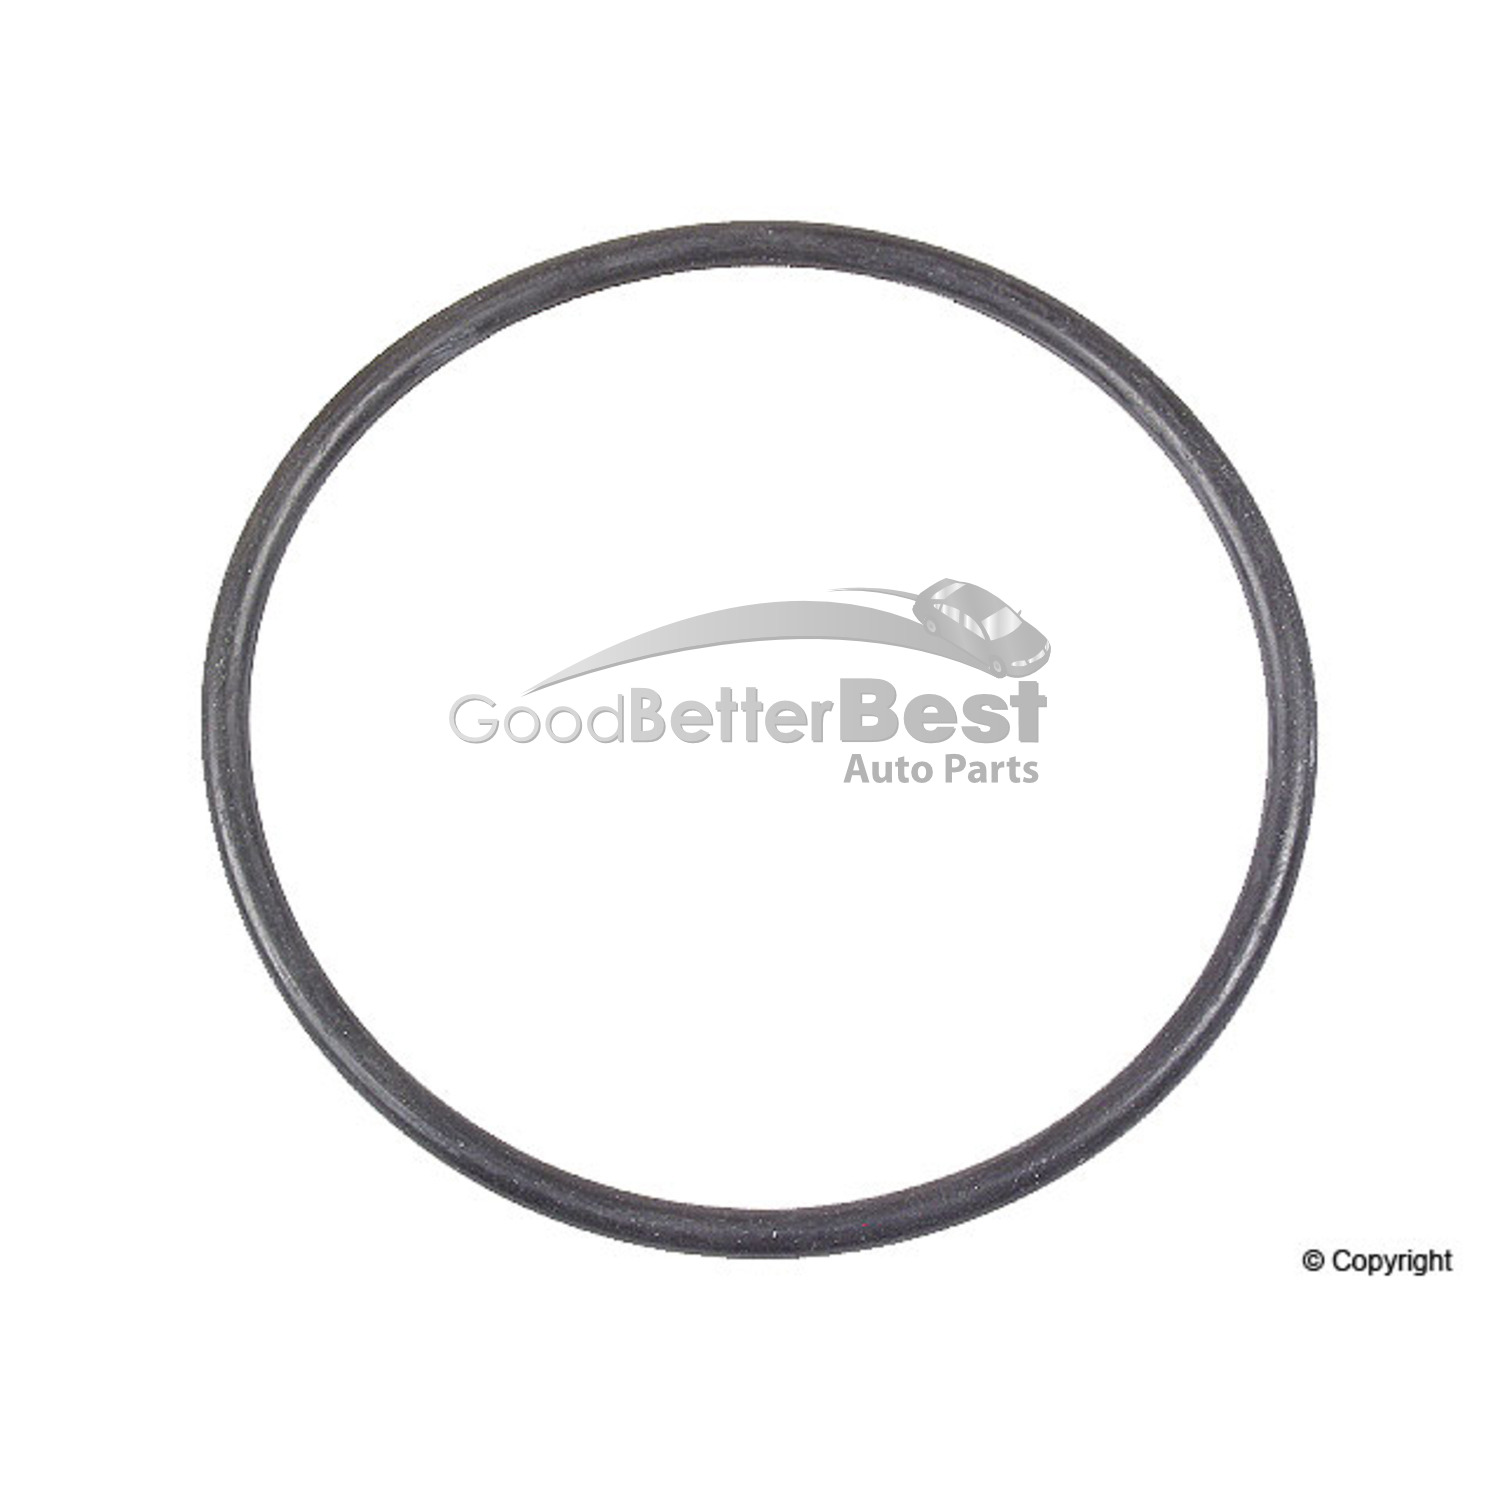 New Conti Engine Coolant Thermostat Seal